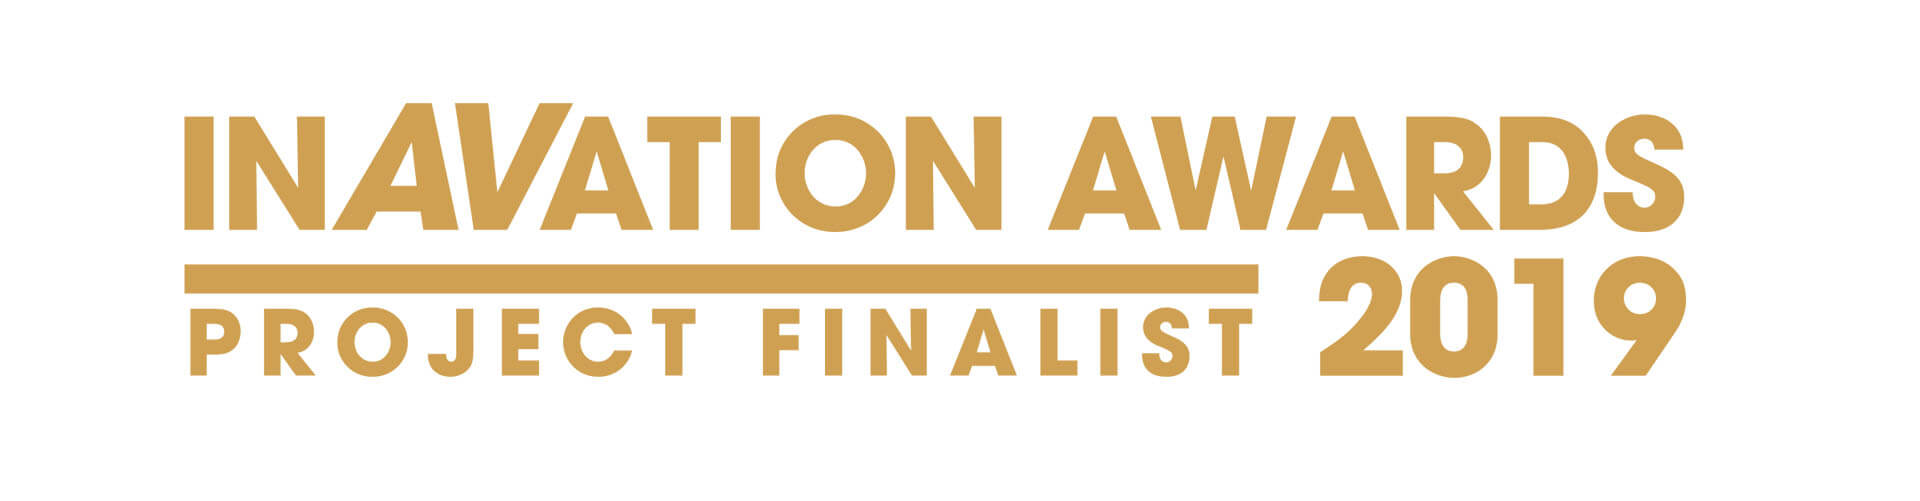 InAVation Awards 2019 финал. Логотип